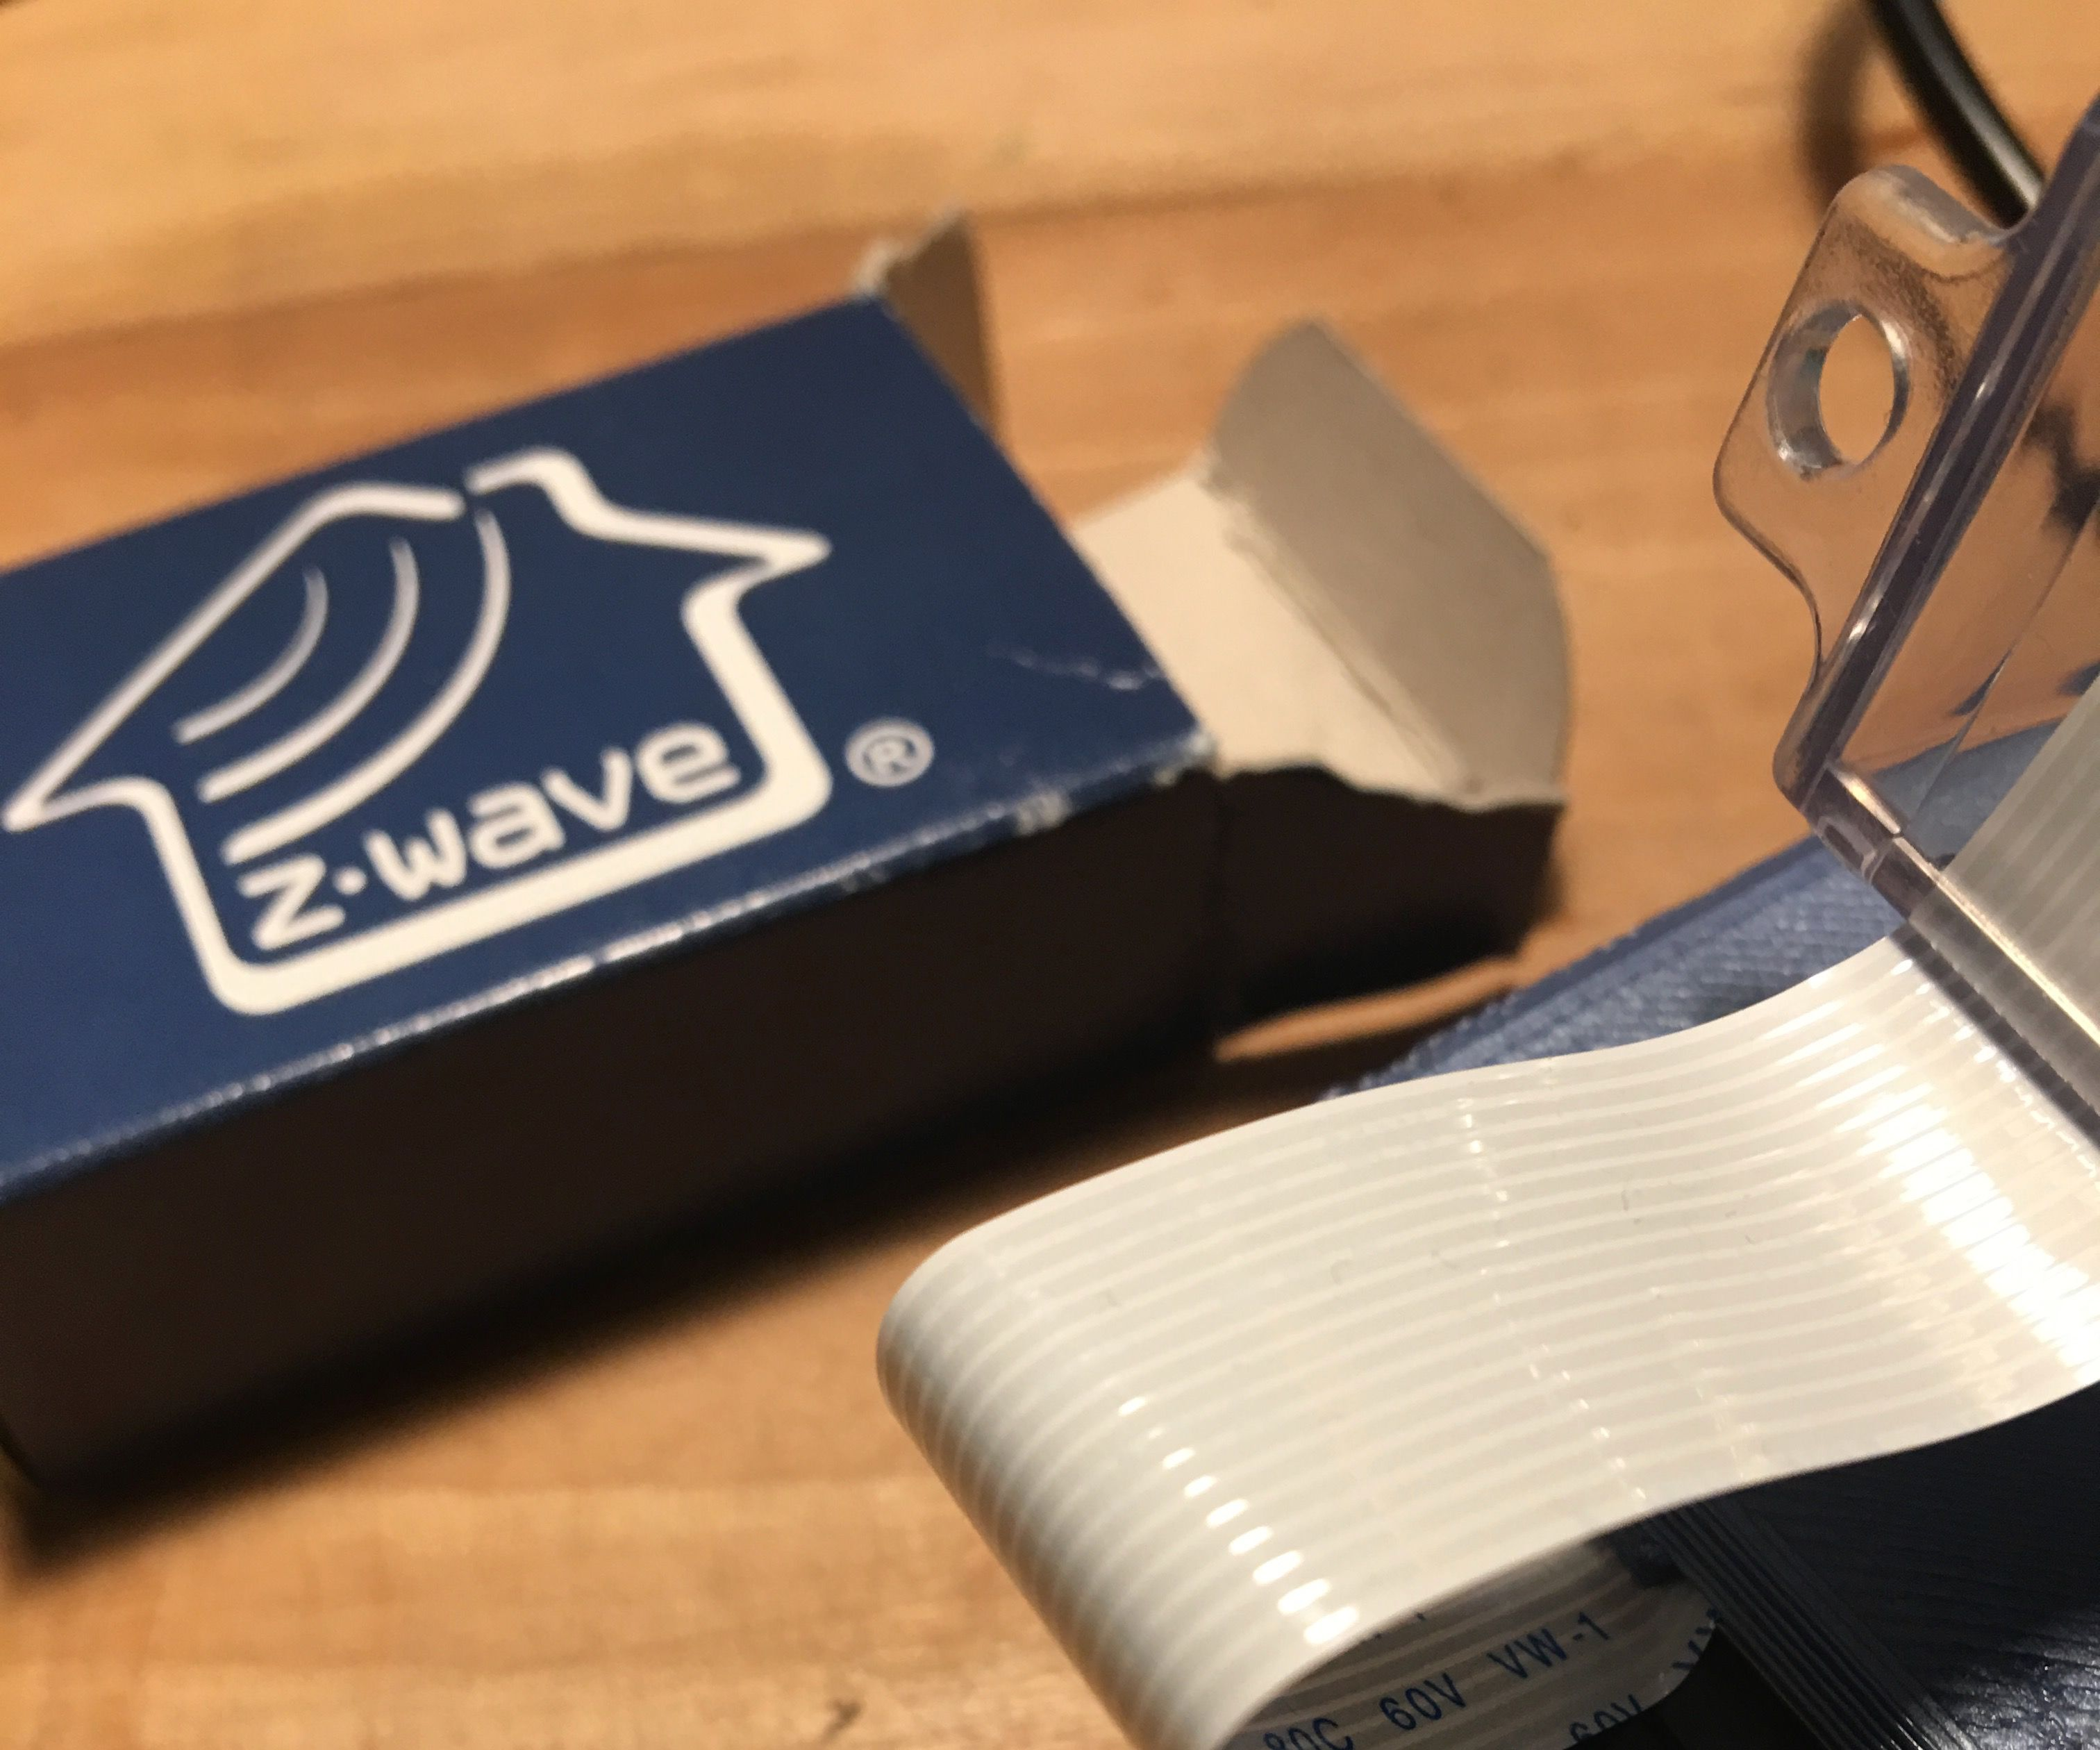 Mozilla IoT Gateway With ESP8266 and Z-Wave